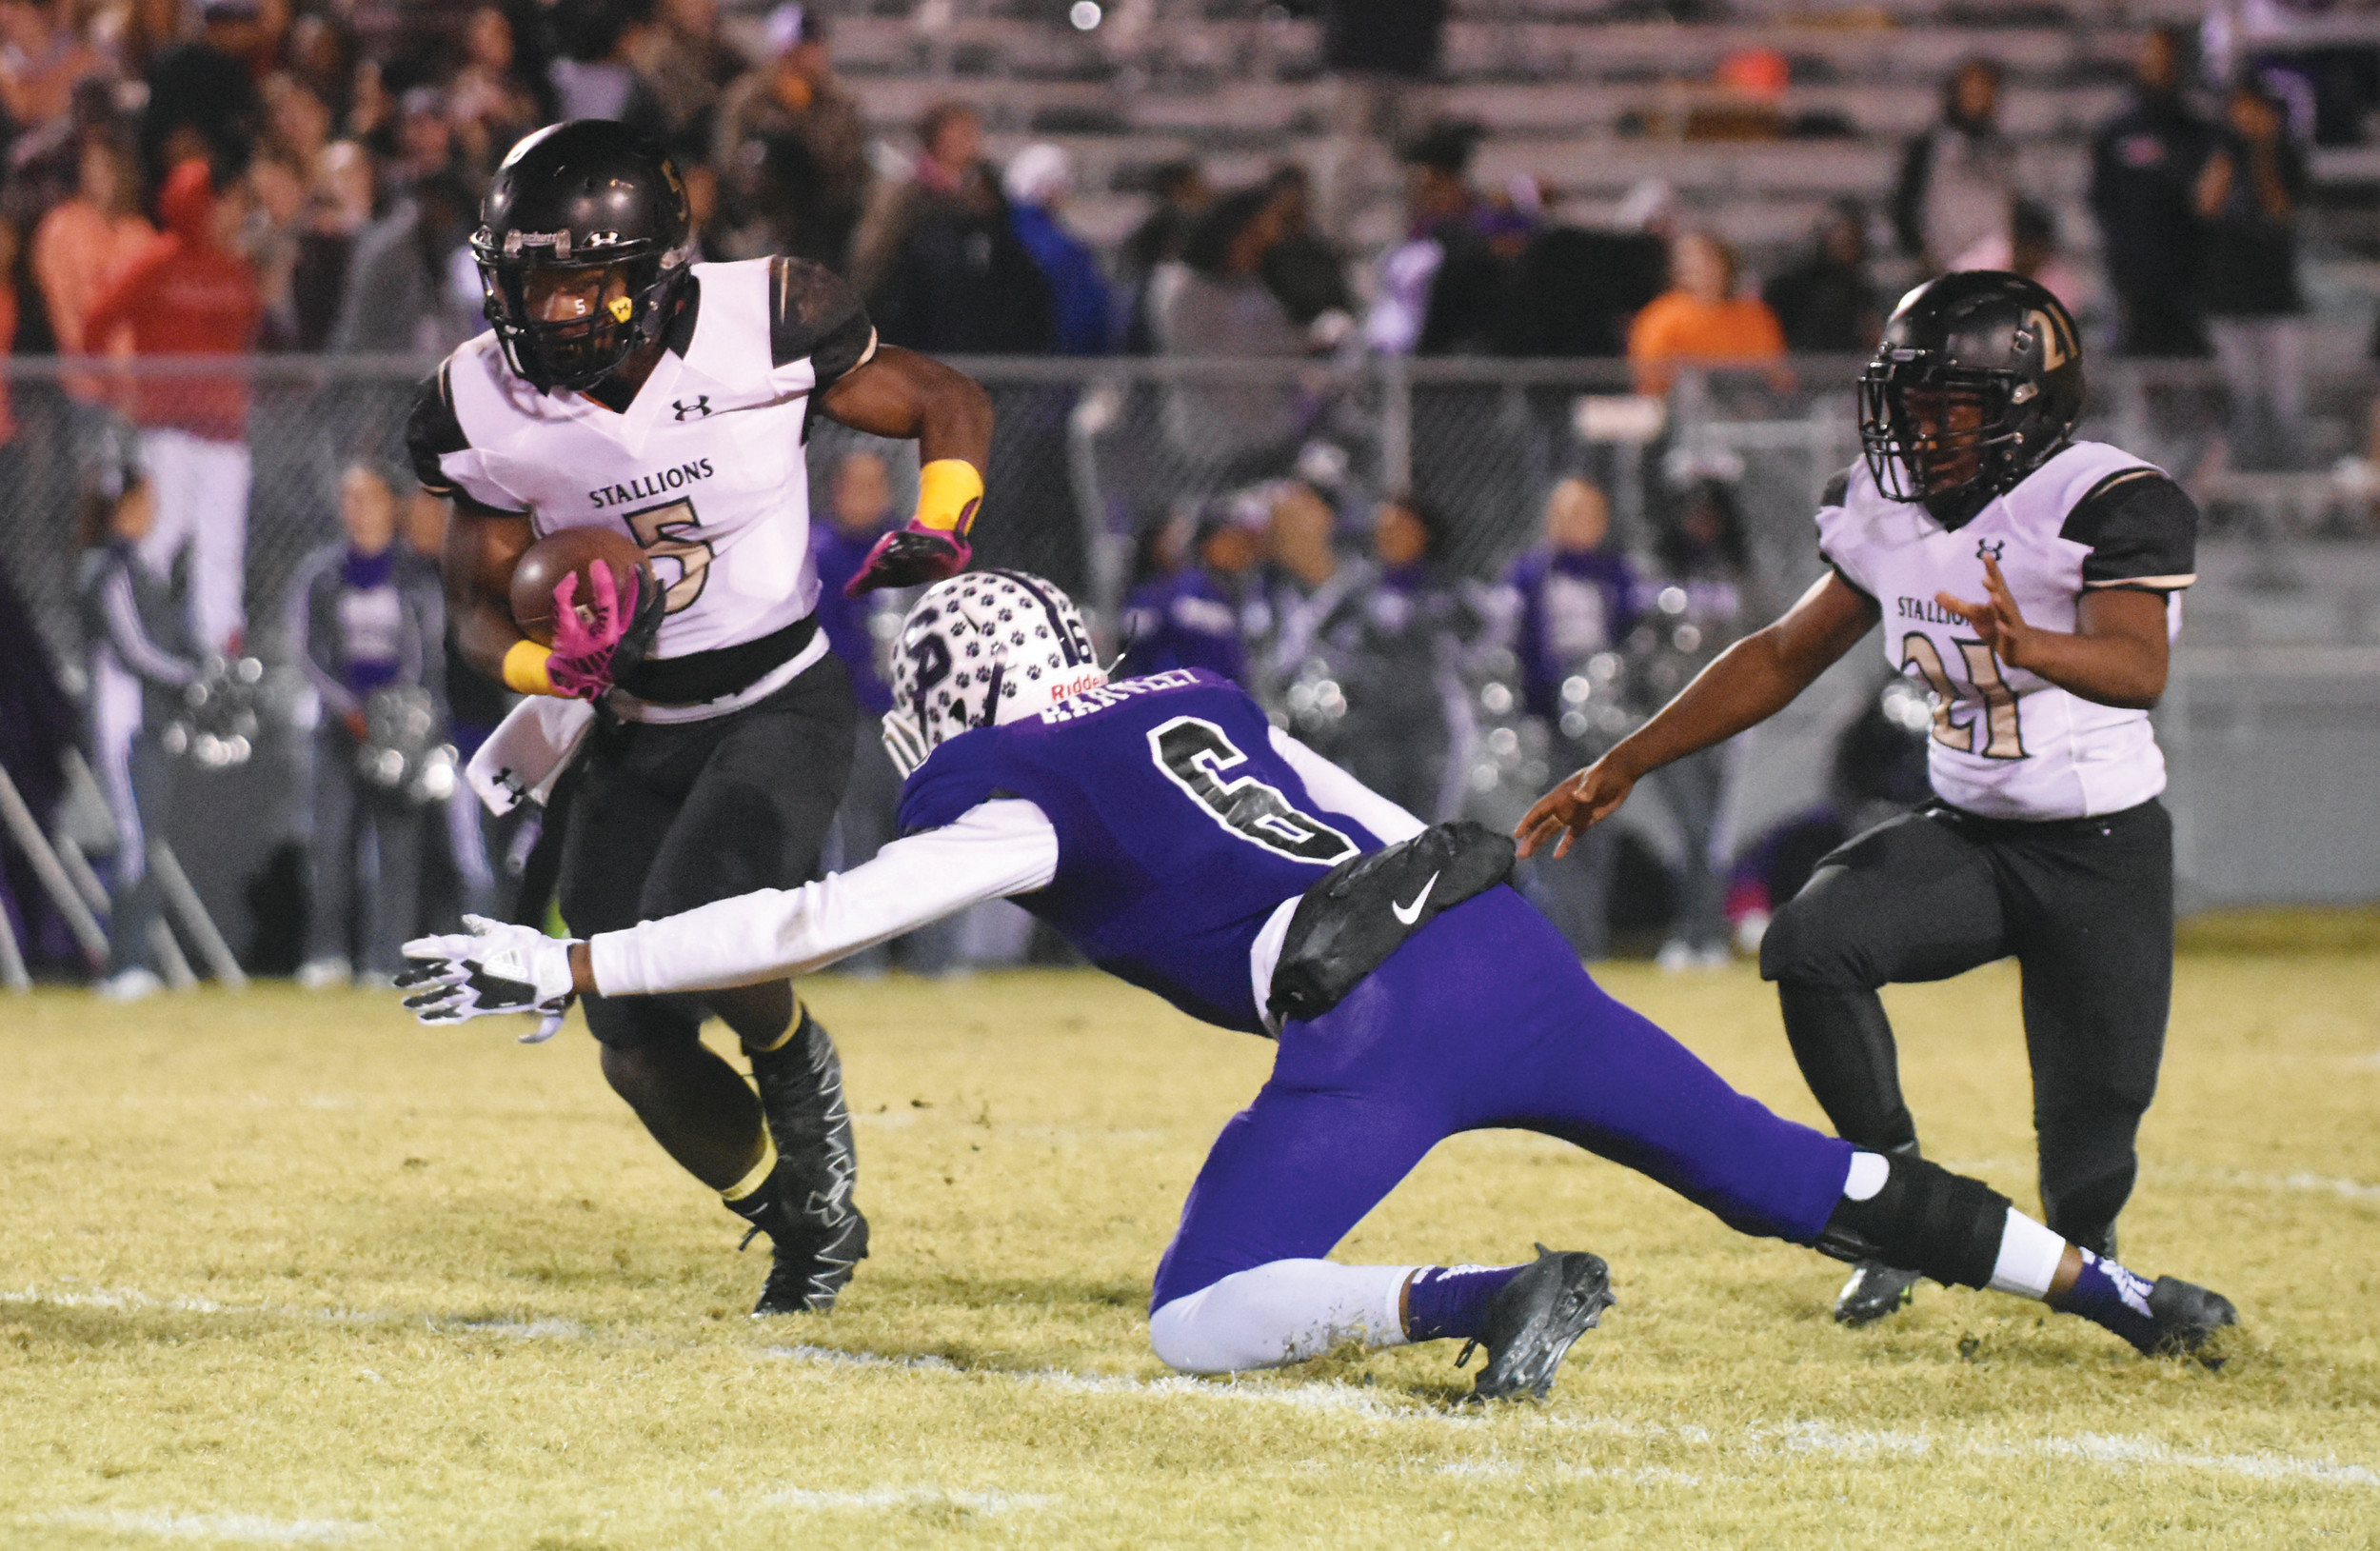 Lee Central running back Demetrius Dubose (5) avoids the tackle of Saluda's Raquon Hartley during the Stallions' 30-26 loss to Saluda in the quarterfinals of the 2A state playoffs on Friday at Bettis Herlong Stadium in Saluda.